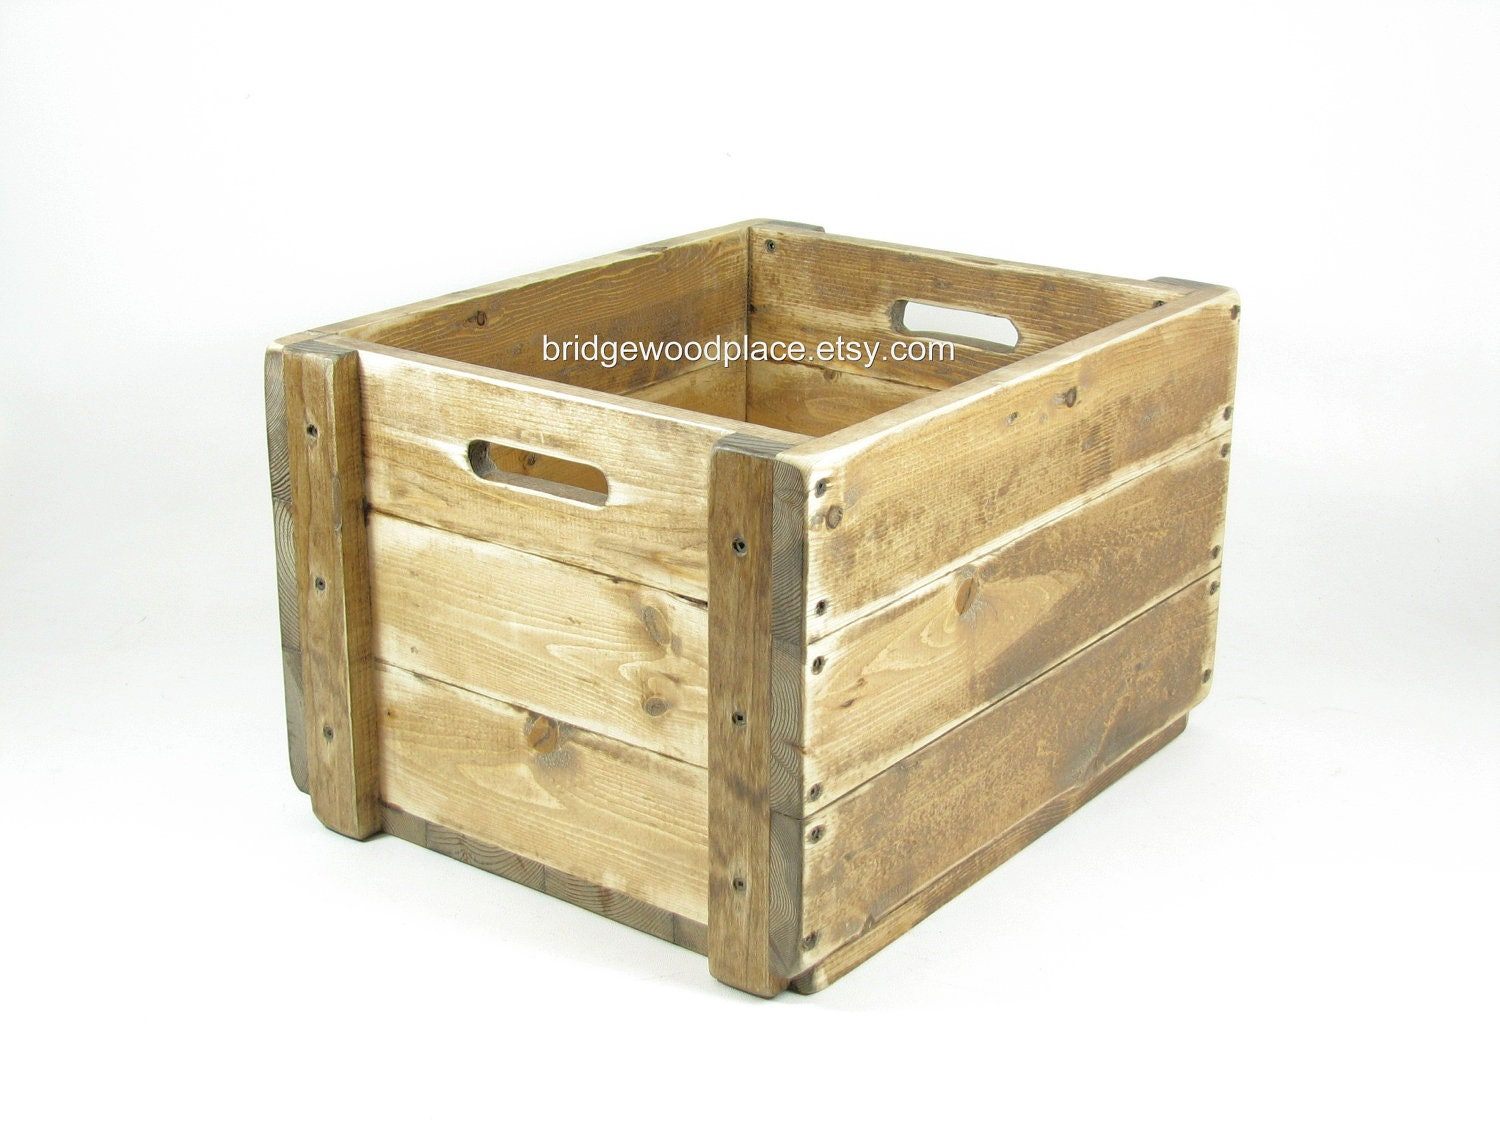 Wood dog crate furniture furniture design ideas Wooden crates furniture